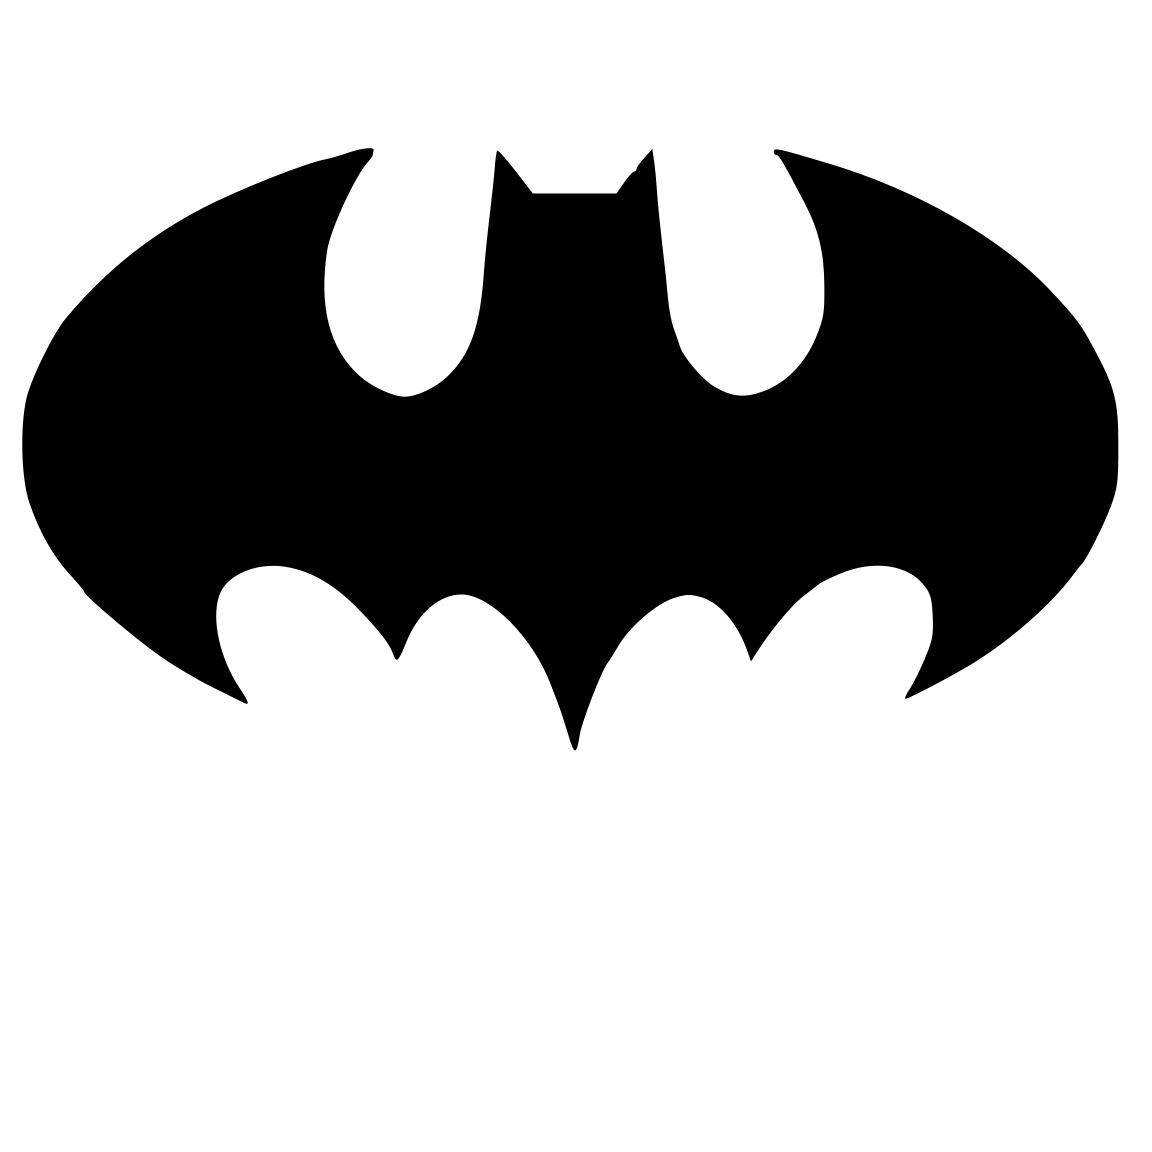 1152x1152 Cutting Files For You Batman Crafts Party